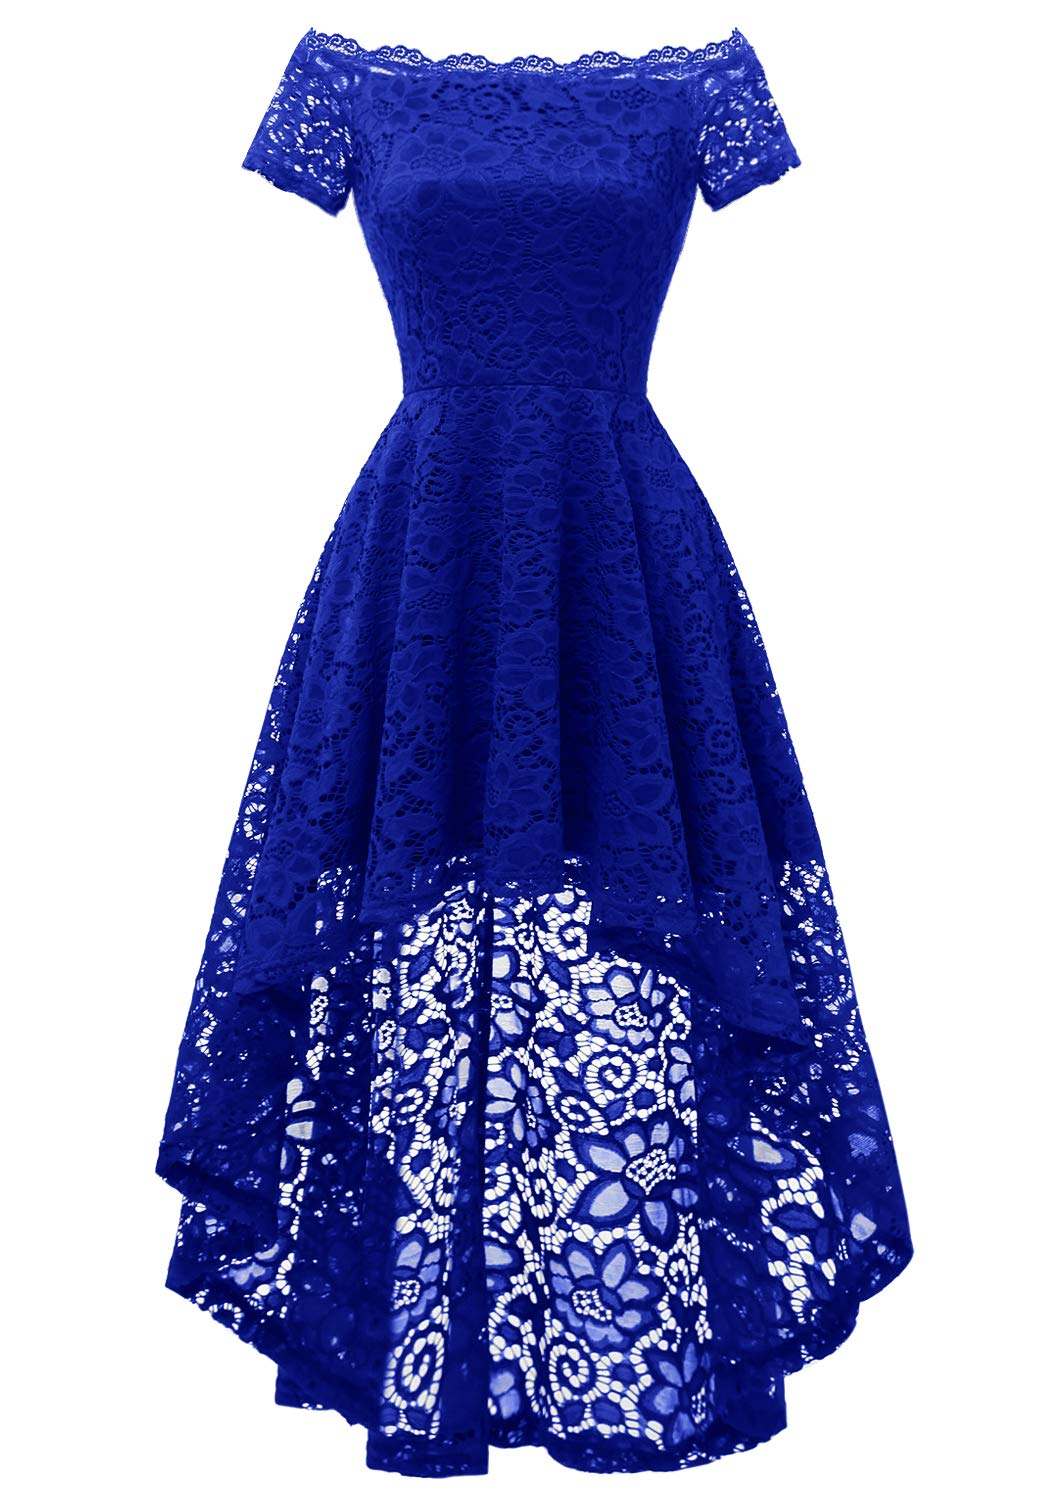 Available at Amazon: Dressystar Women's Lace Off Shoulder Cocktail Hi-Lo Bridesmaid Swing Dress